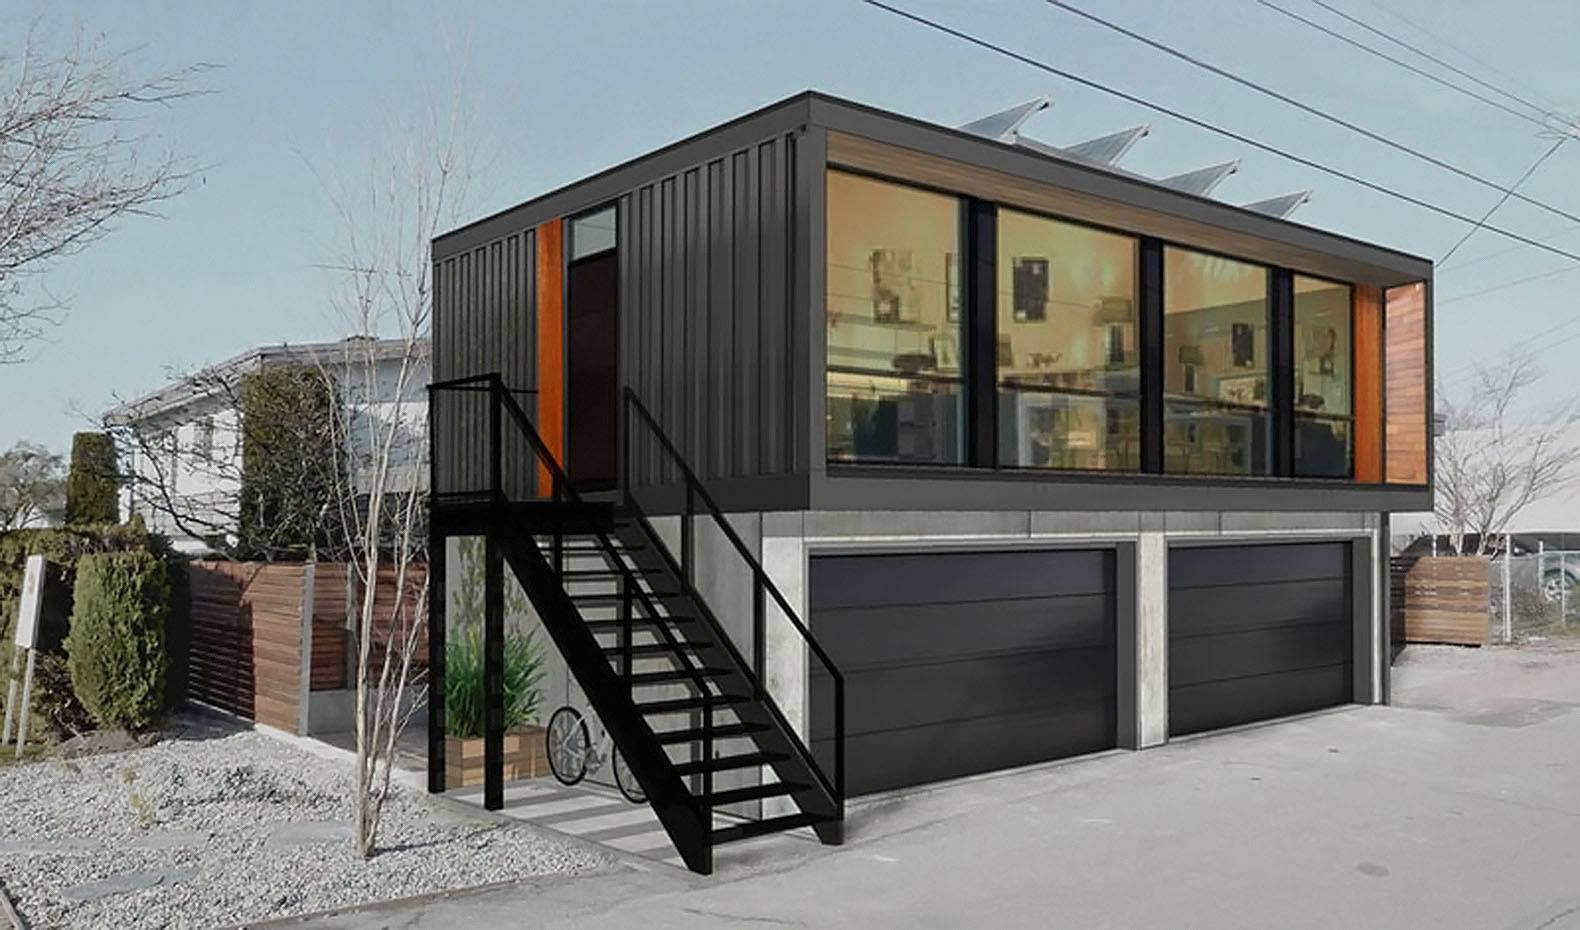 Honomobo Prefab Homes Shipping Containers Houses Tiny